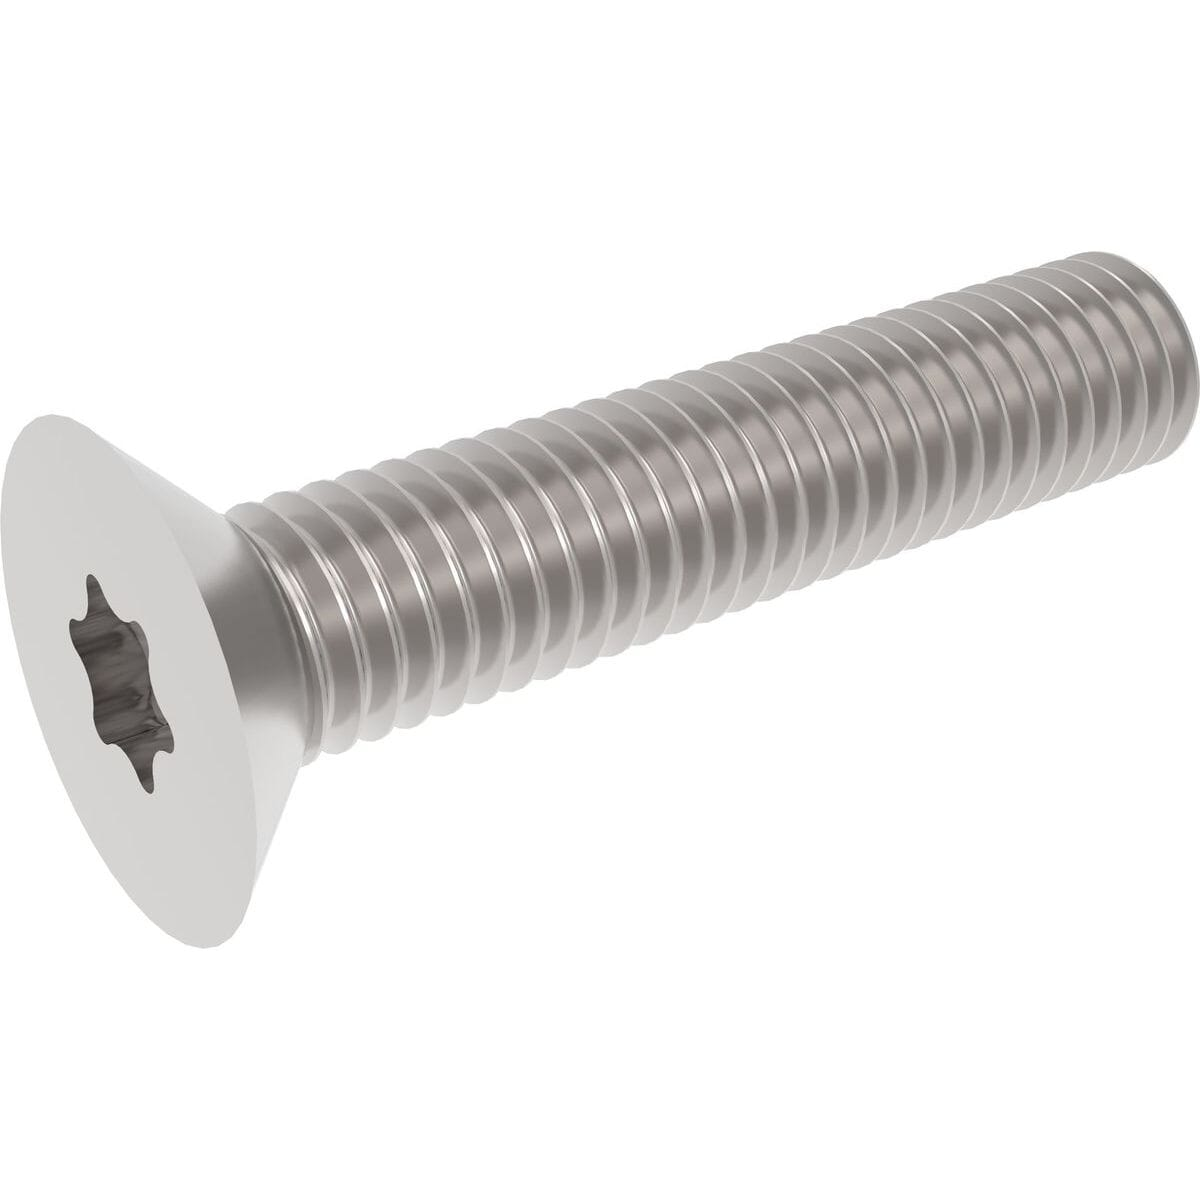 M4 x 100mm Torx Countersunk Screws (ISO 14581) - Stainless Steel (A2)